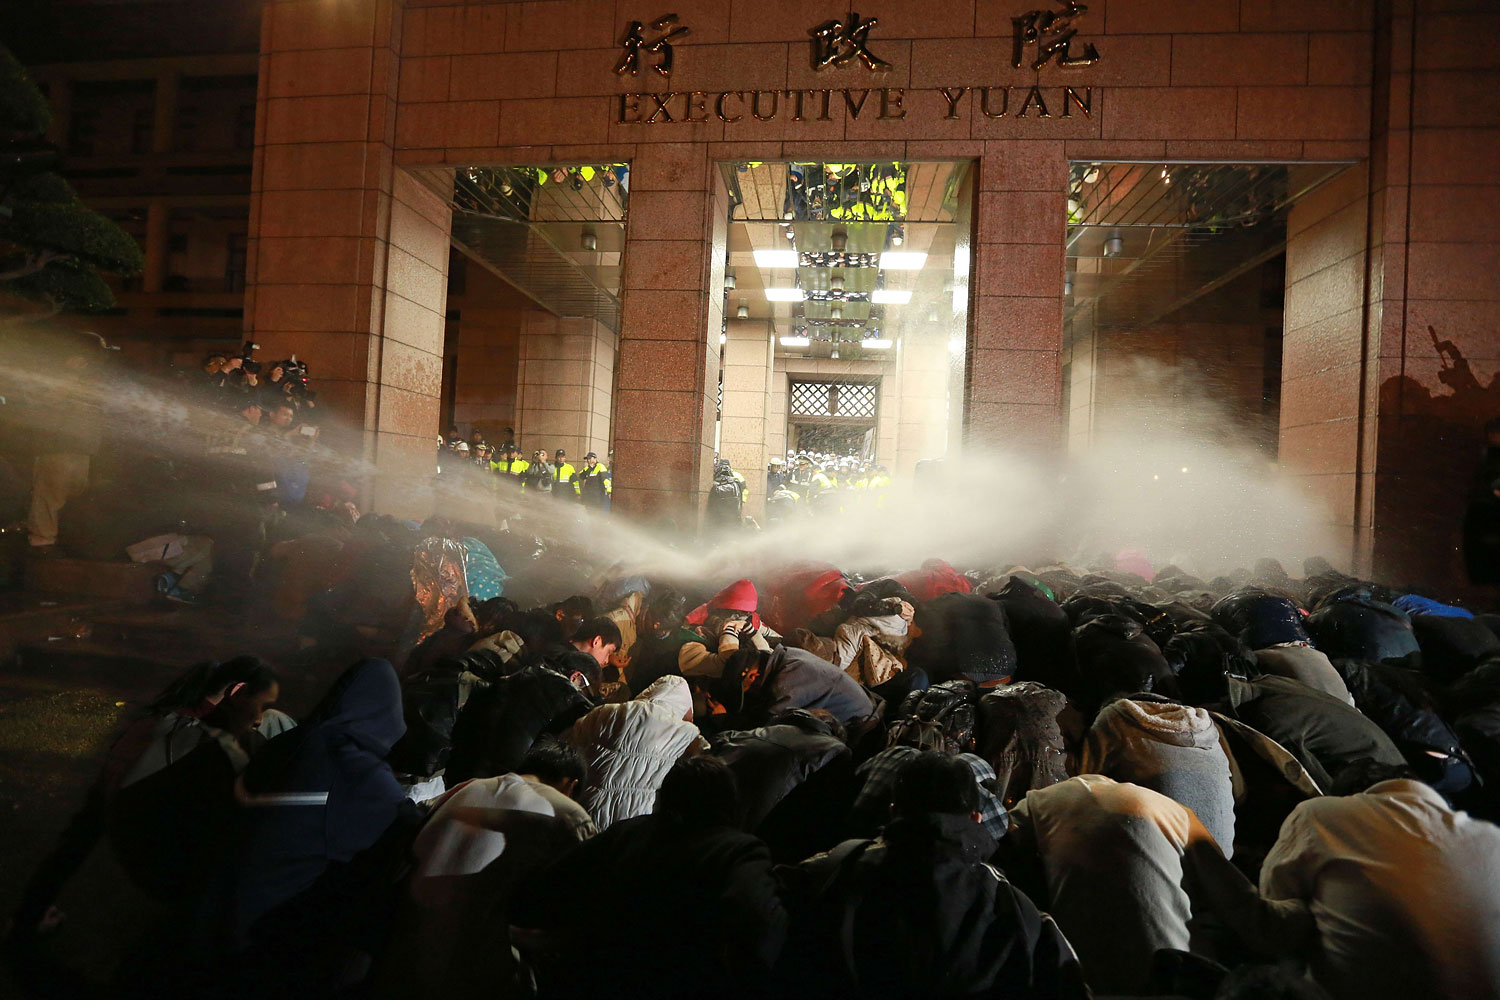 Protesters are sprayed with a water cannon during a demonstration outside the Executive Yuan in Taipei early on March 24, 2014, following Taiwan President Ma Ying-jeou's refusal to scrap a contentious trade agreement with China.